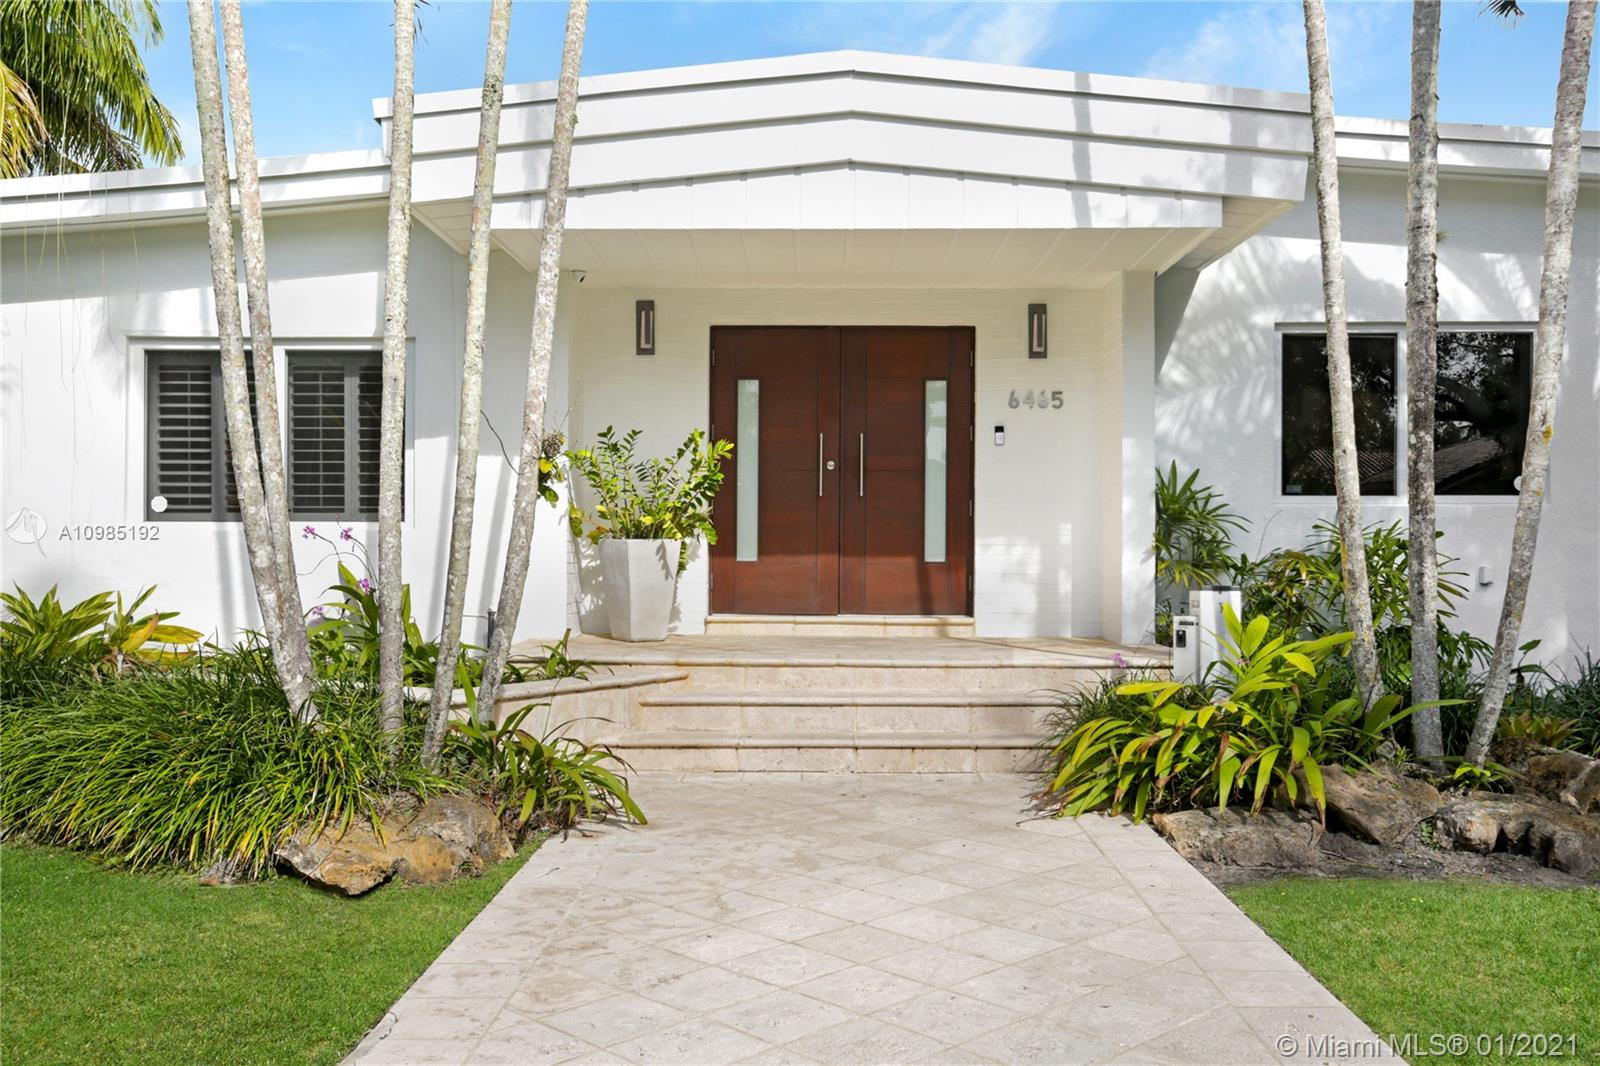 6465 SW 116th St, Pinecrest, Florida 33156, 4 Bedrooms Bedrooms, ,4 BathroomsBathrooms,Residential,For Sale,6465 SW 116th St,A10985192